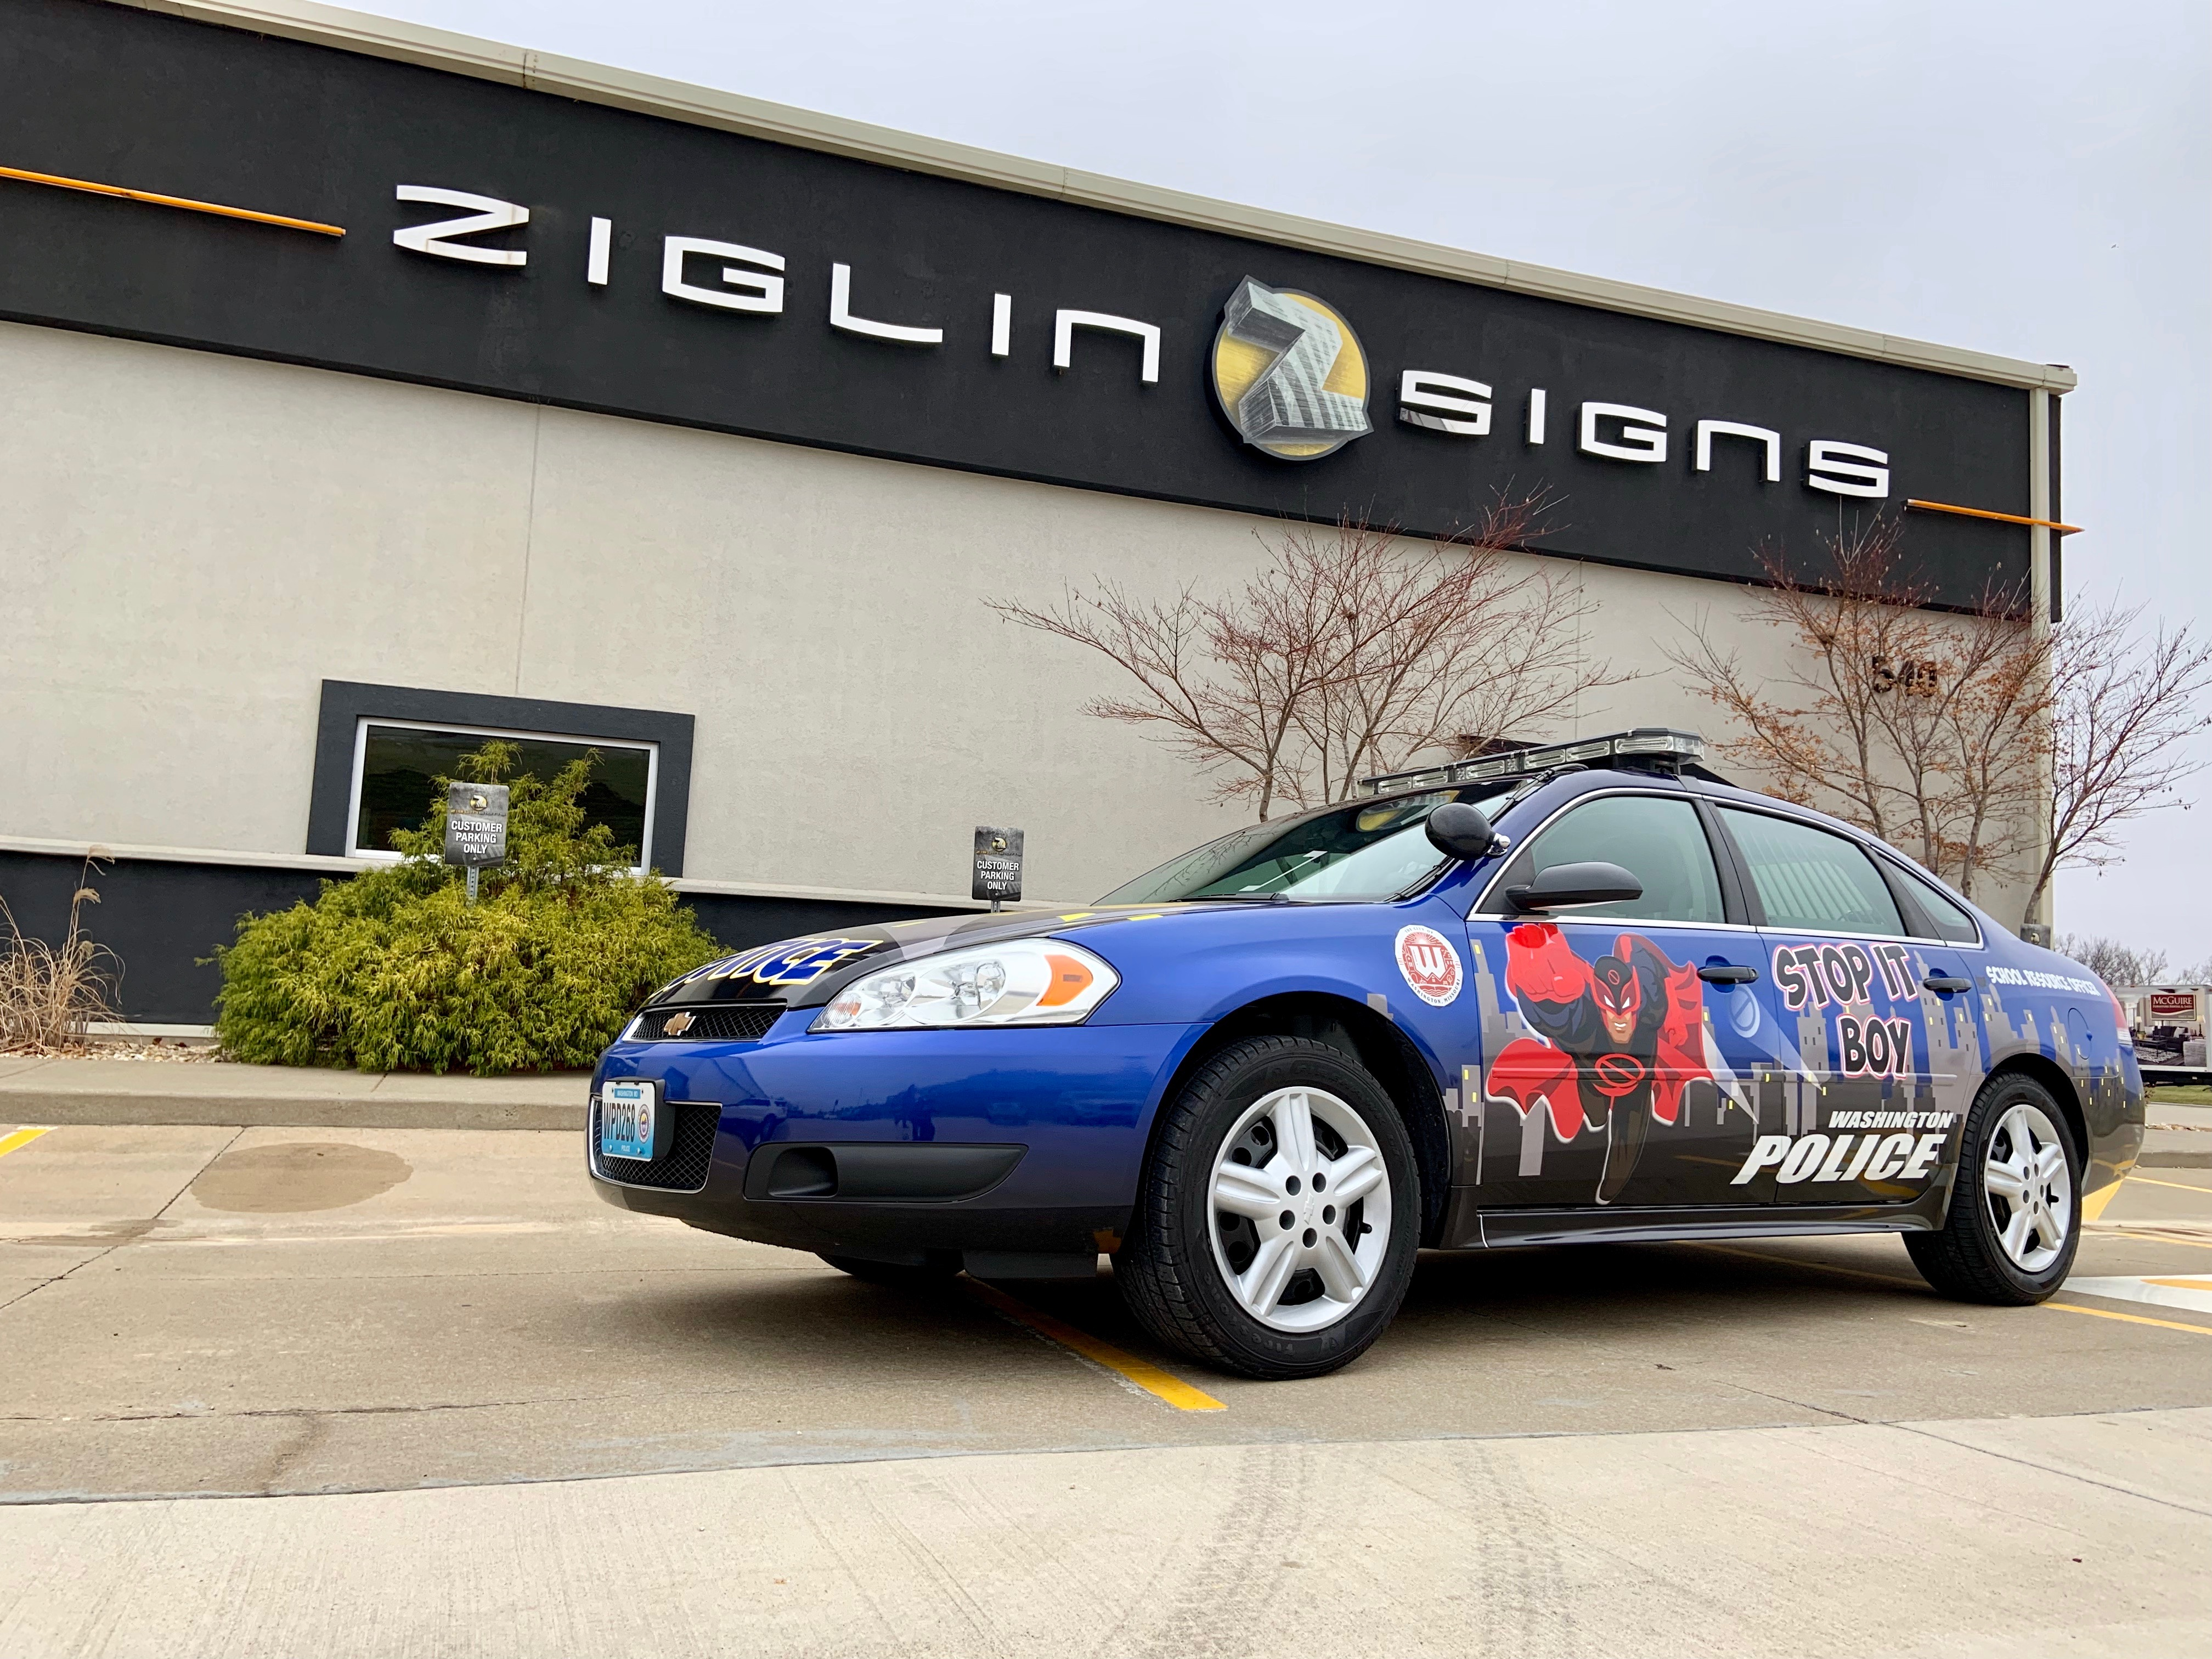 Washington School District SRO Vehicle Wrap